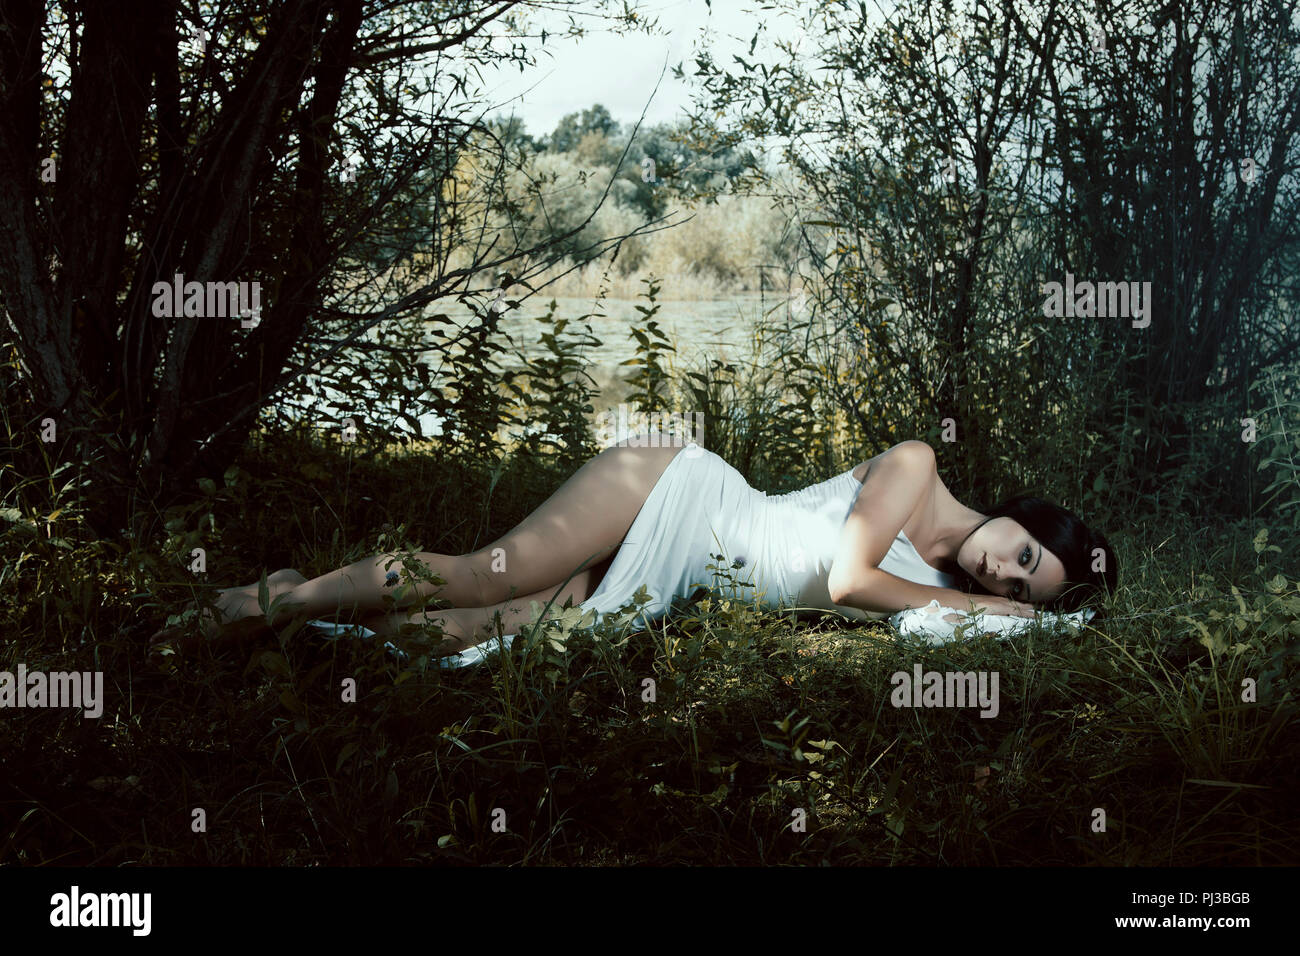 Pale woman in white dress lying on the ground, fairytale scene - Stock Image